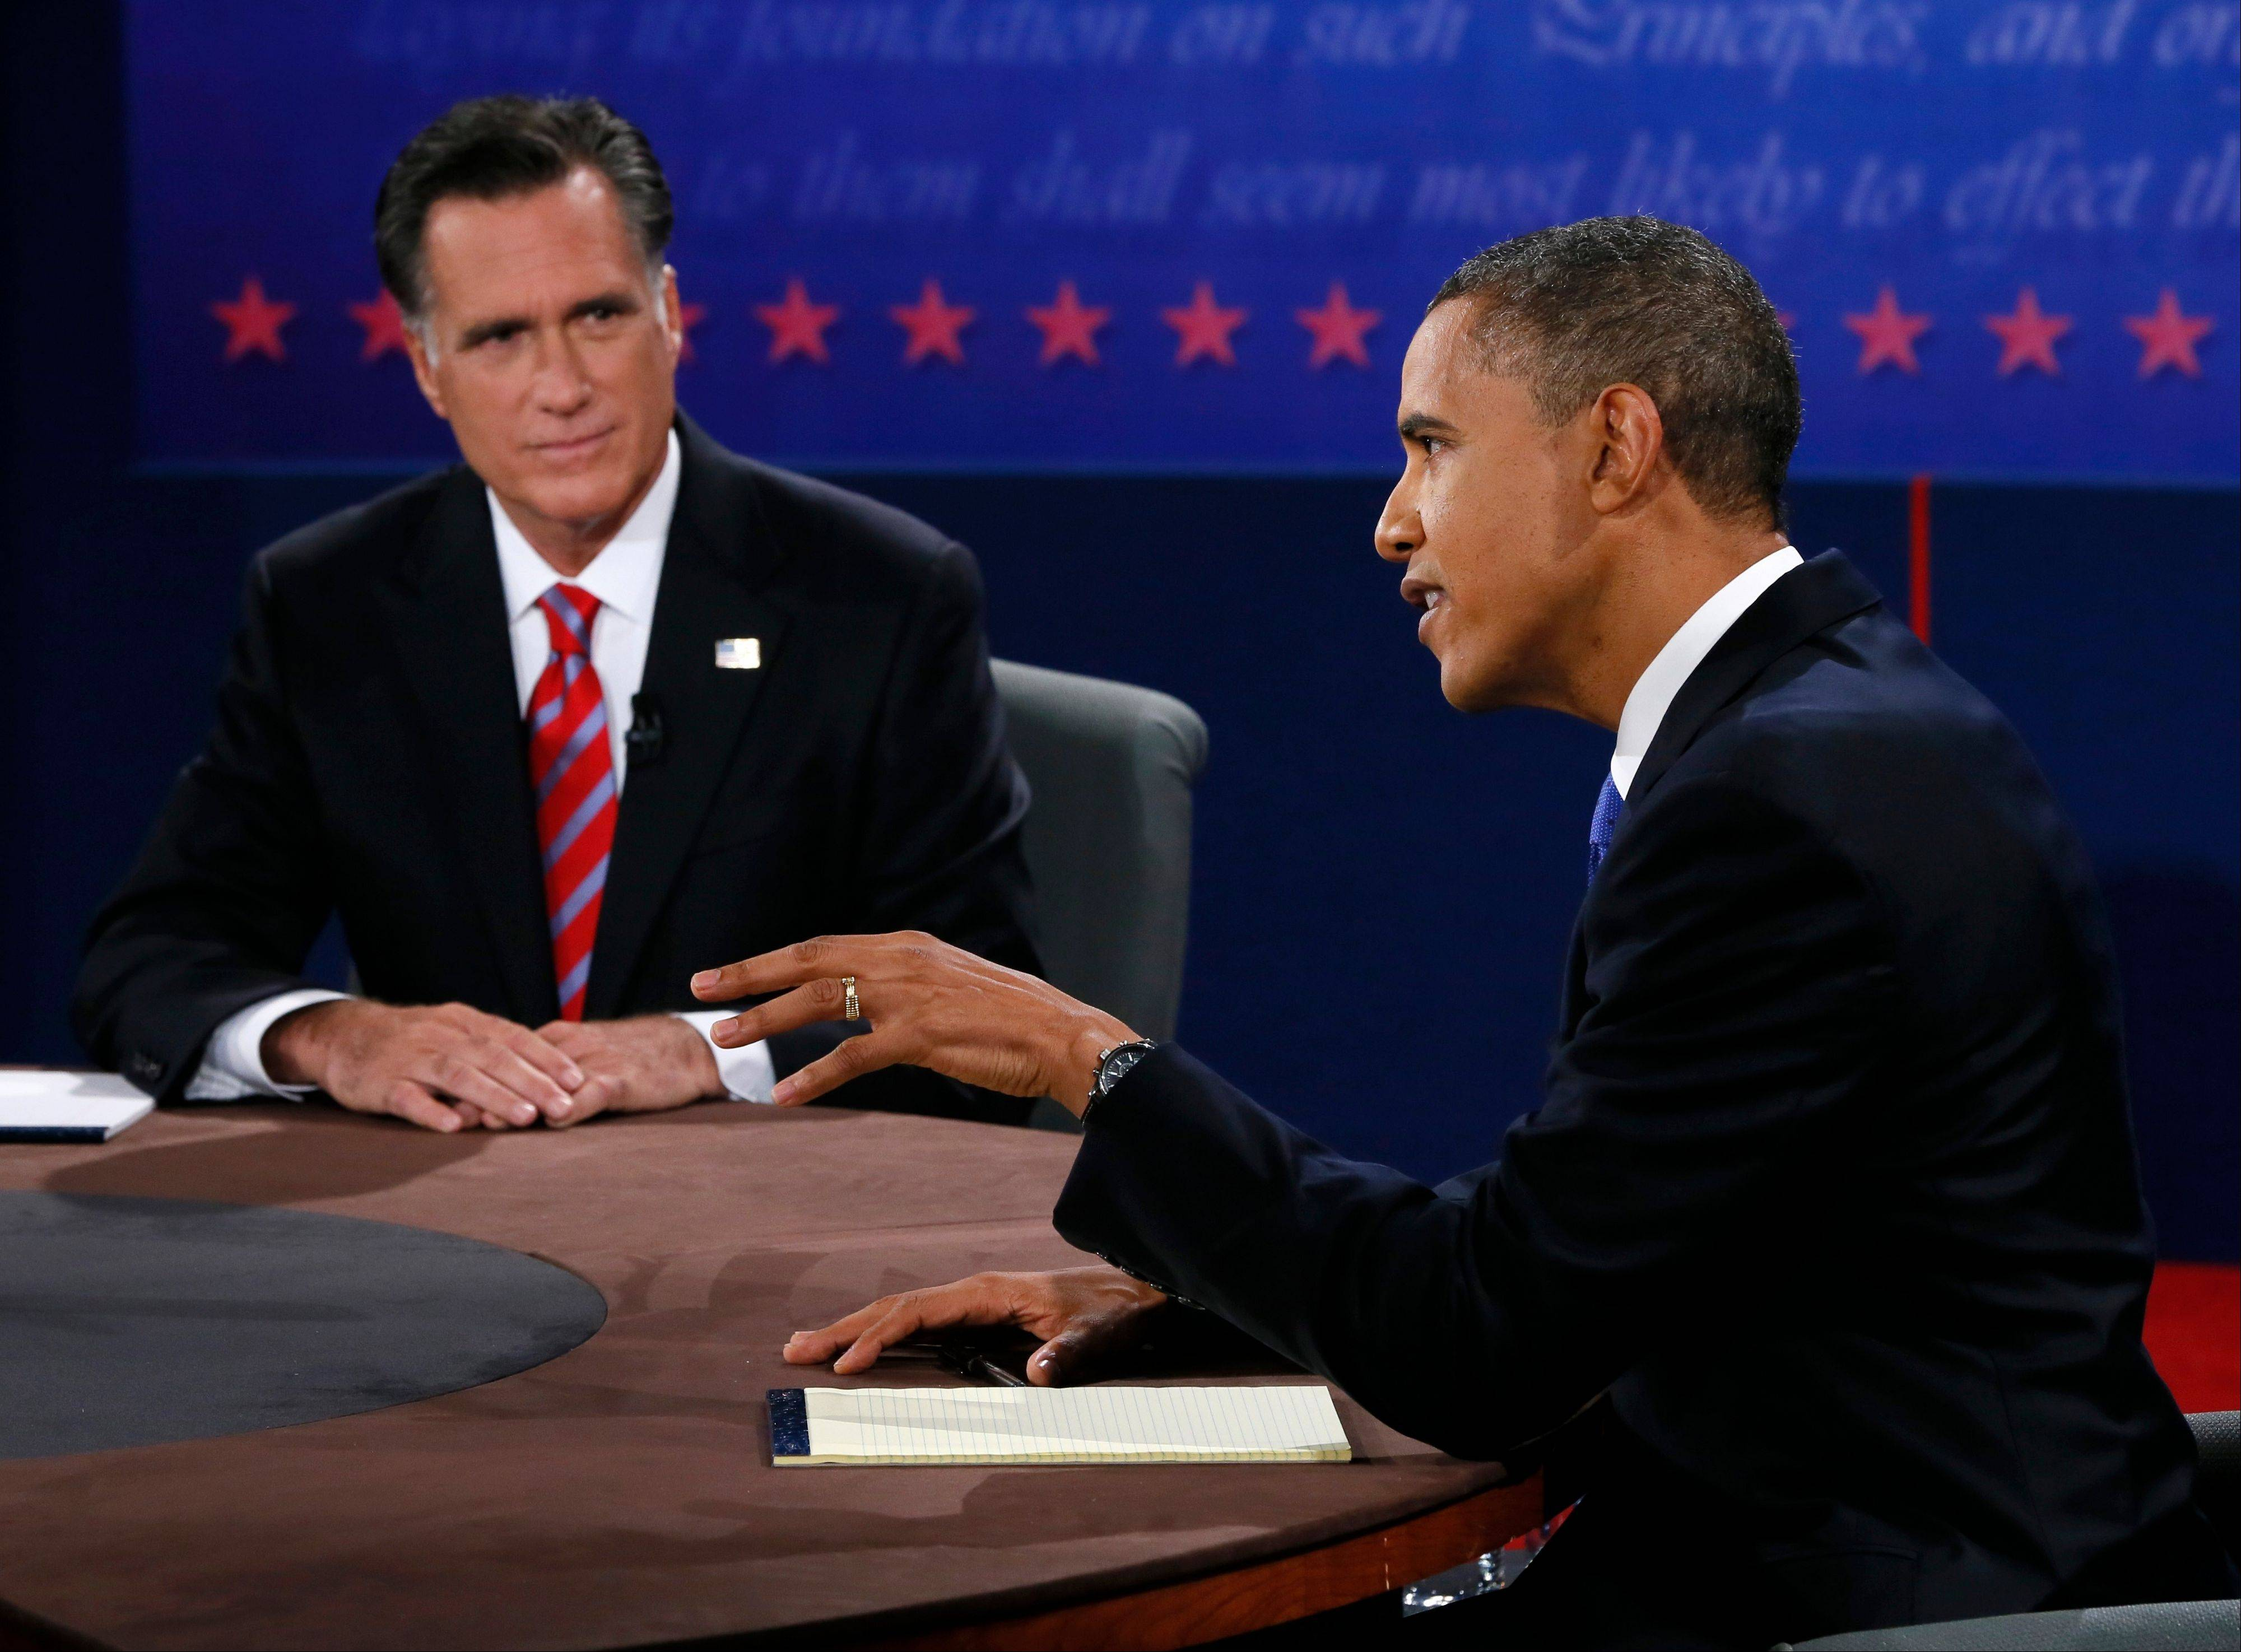 Final debate: Challenging each other face-to-face